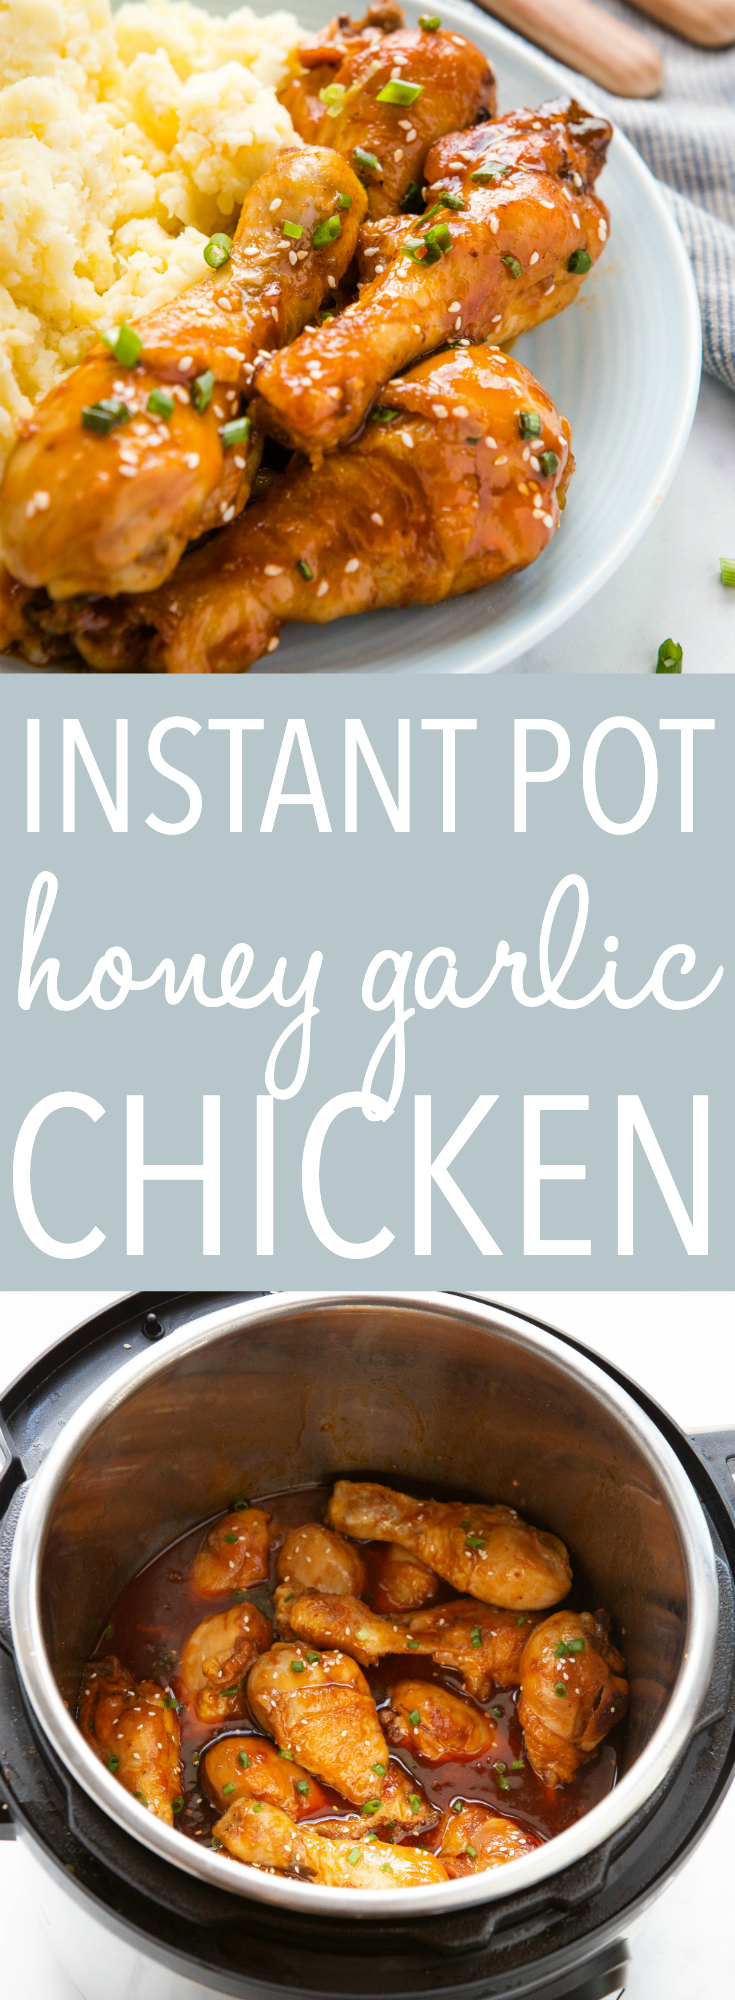 This Instant Pot Honey Garlic Chicken is the perfect quickand easy weeknight meal with a simple sweet sauce, made in the Instant Pot in less than 25 minutes! Recipe from thebusybaker.ca! #instantpot #honeygarlicchicken #instantpotchicken #familymeal #recipe #easymeal #weeknightmeal #honeygarlicsauce via @busybakerblog